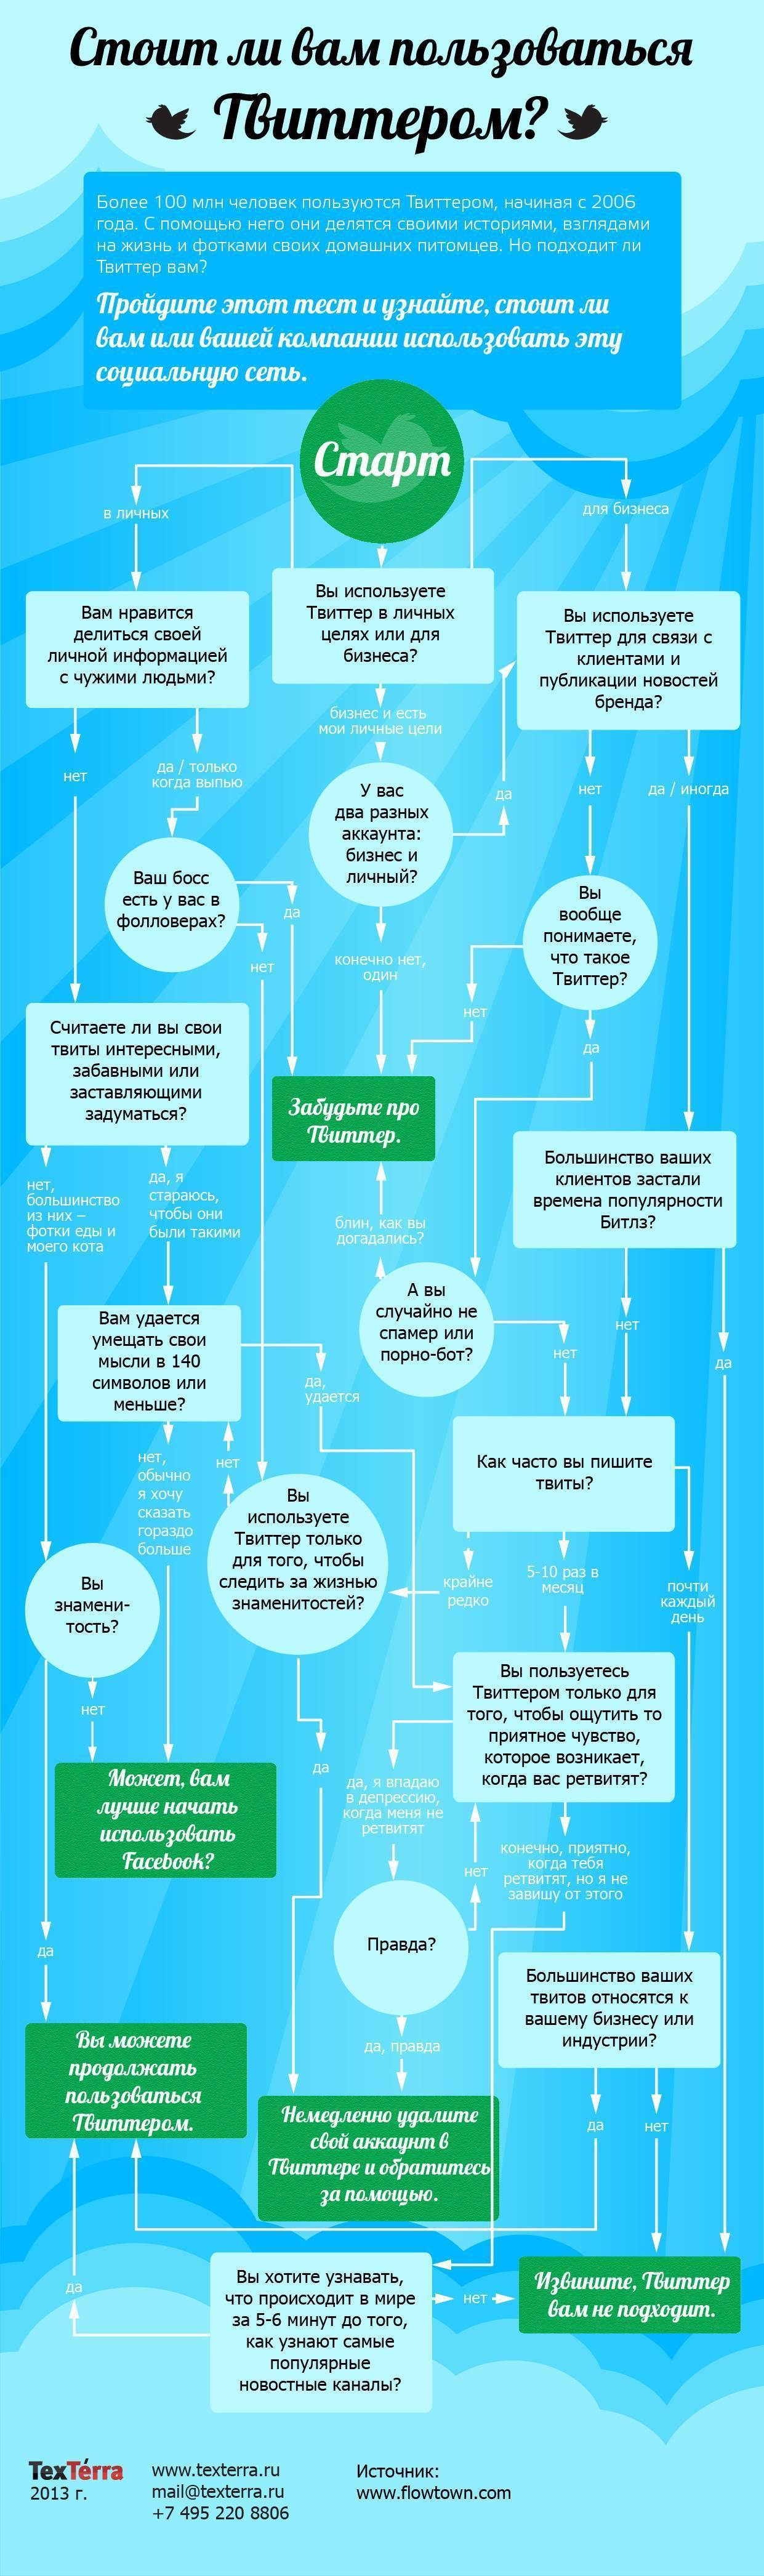 Should You Use Twitter? (Infographic)